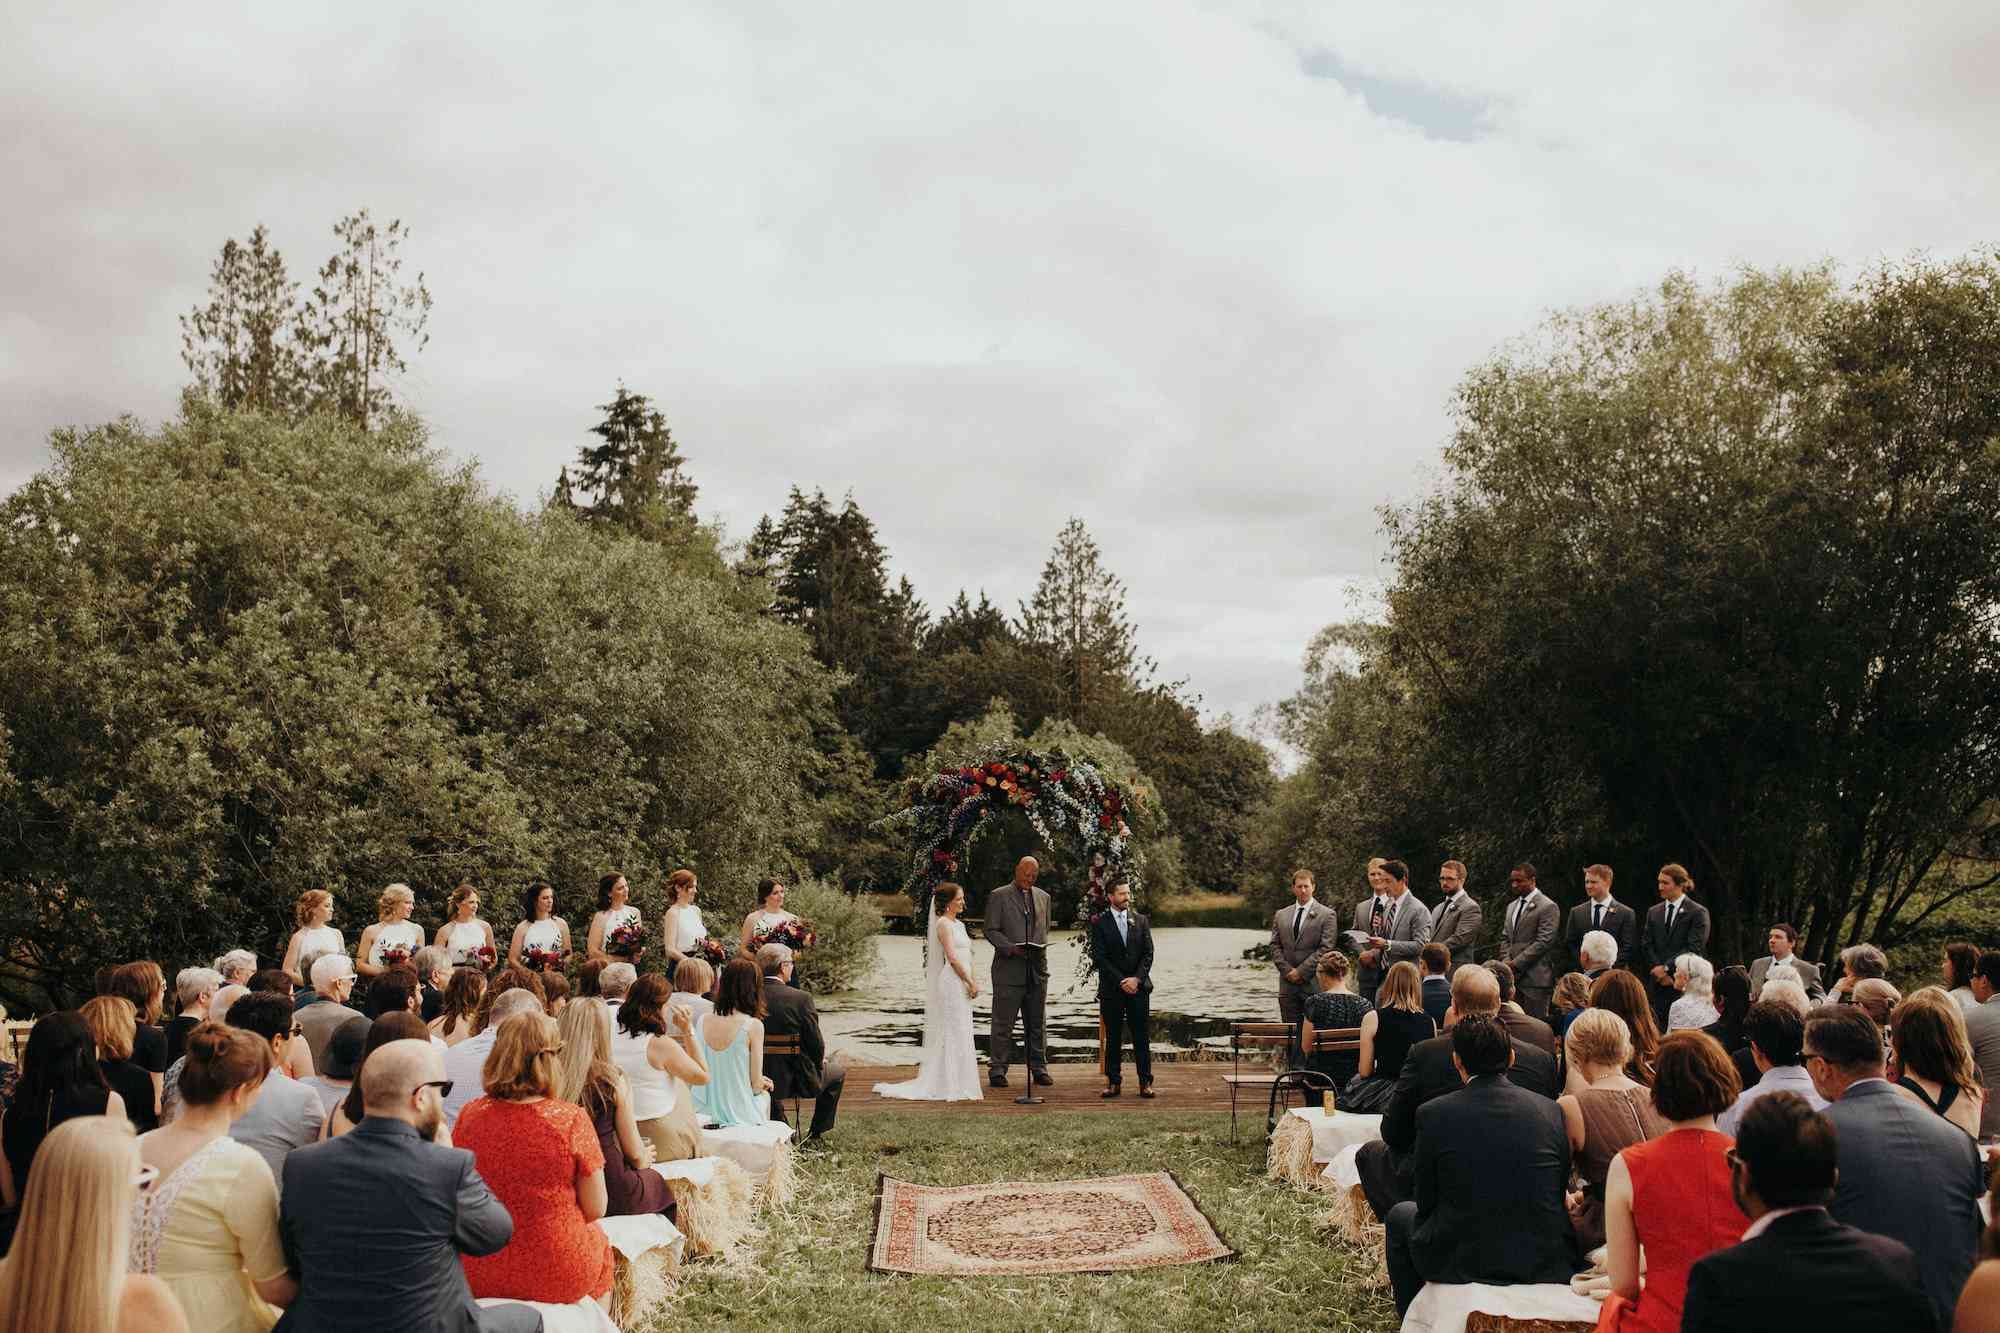 Wedding ceremony with guests sitting on hay bales and Persian rugs lining the aisle